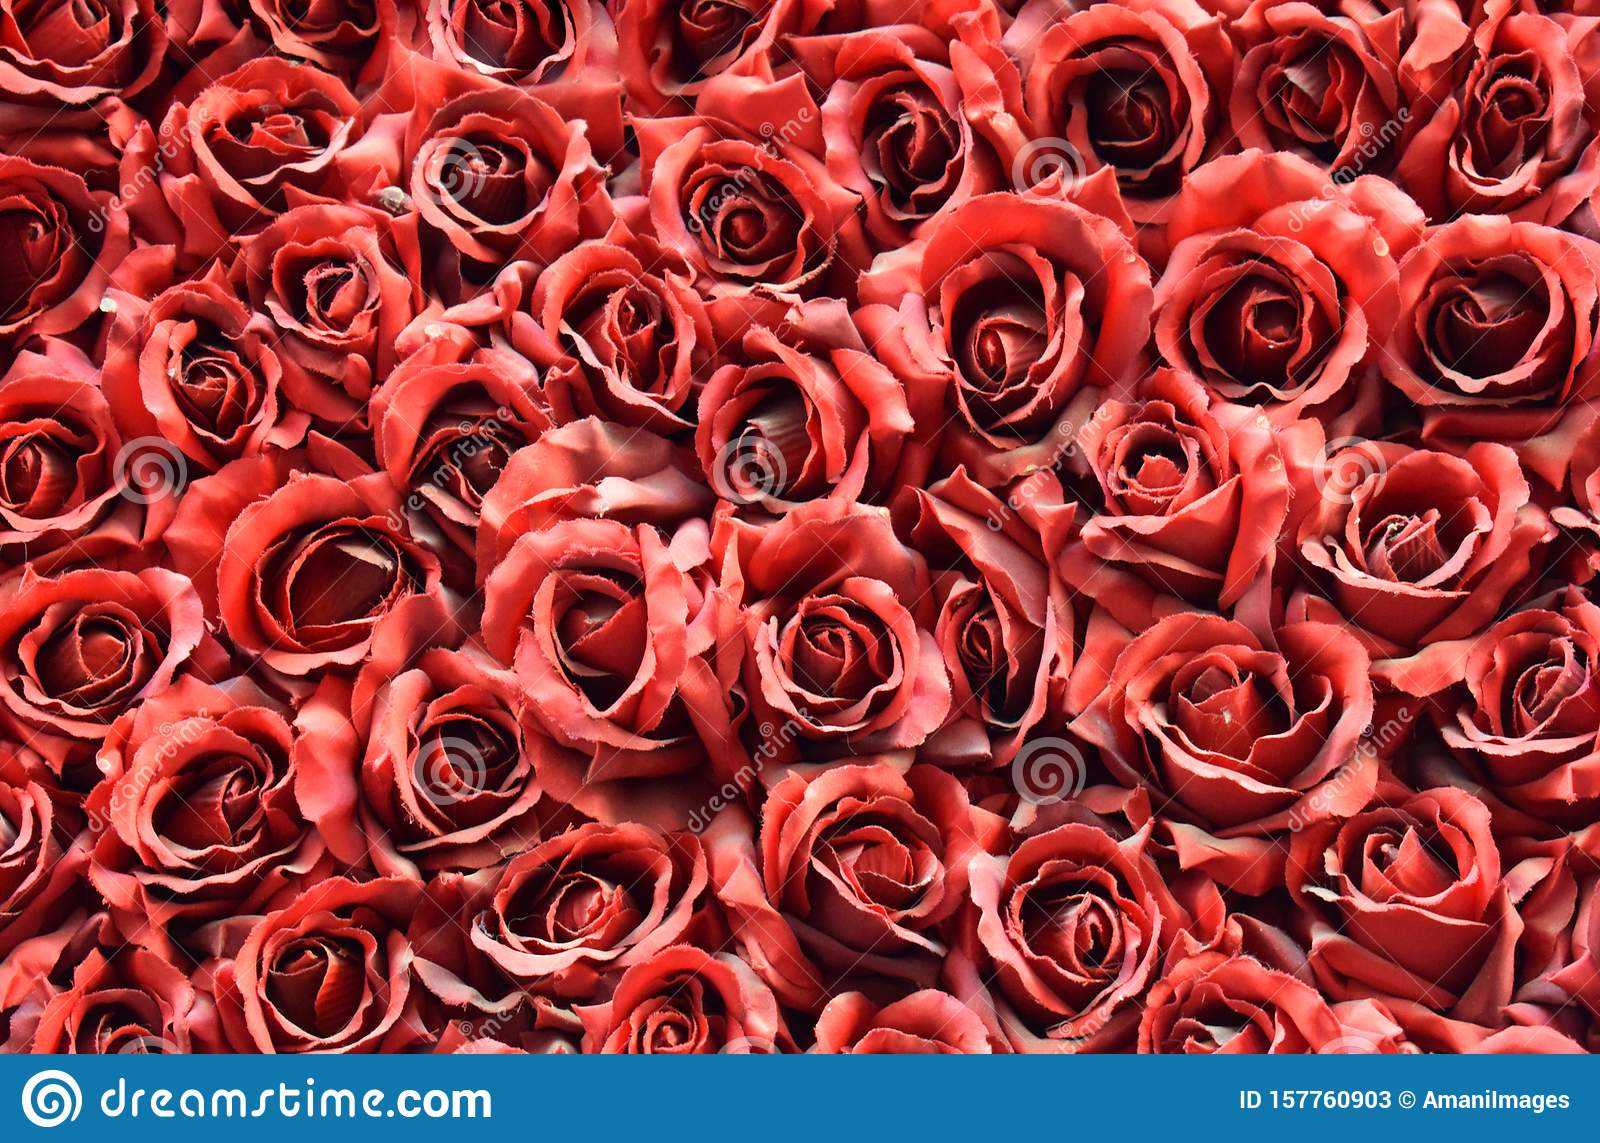 Many red roses collage wallpaper